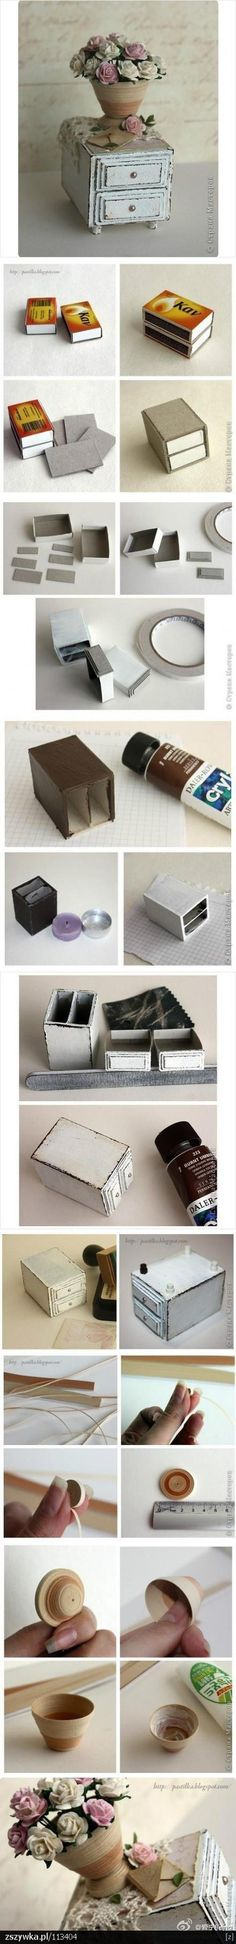 make a cute mini side table out of matchboxes! Dollhouse tutorial, ideas for dollhouse furniture, DIY dollhouse furniture Miniature Furniture, Doll Furniture, Dollhouse Furniture, Furniture Stores, Furniture Outlet, Furniture Ideas, Furniture Online, Handmade Furniture, Furniture Design